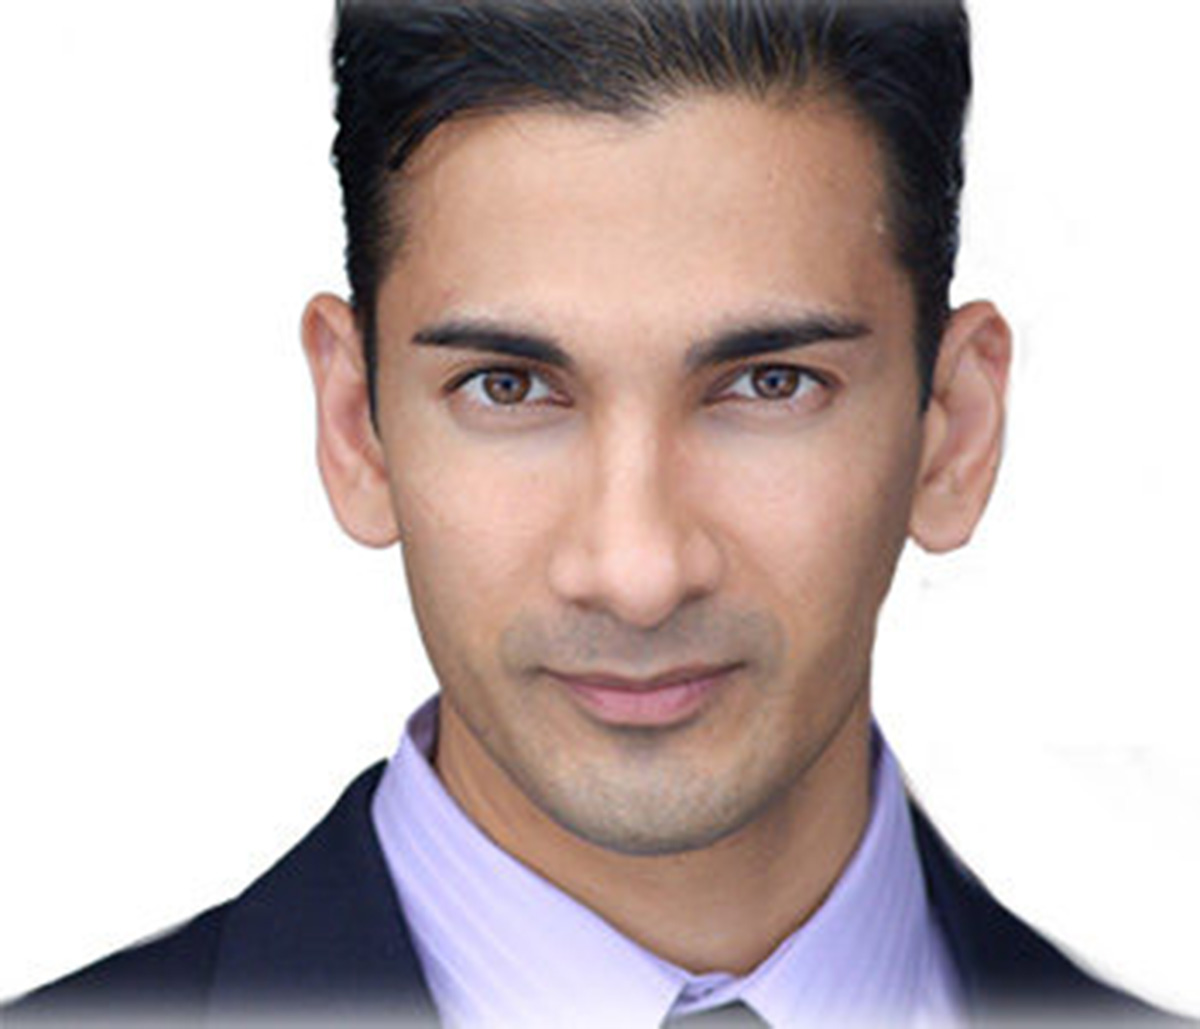 Dr. Dennis Dass is a board certified plastic surgeon in Beverly Hills